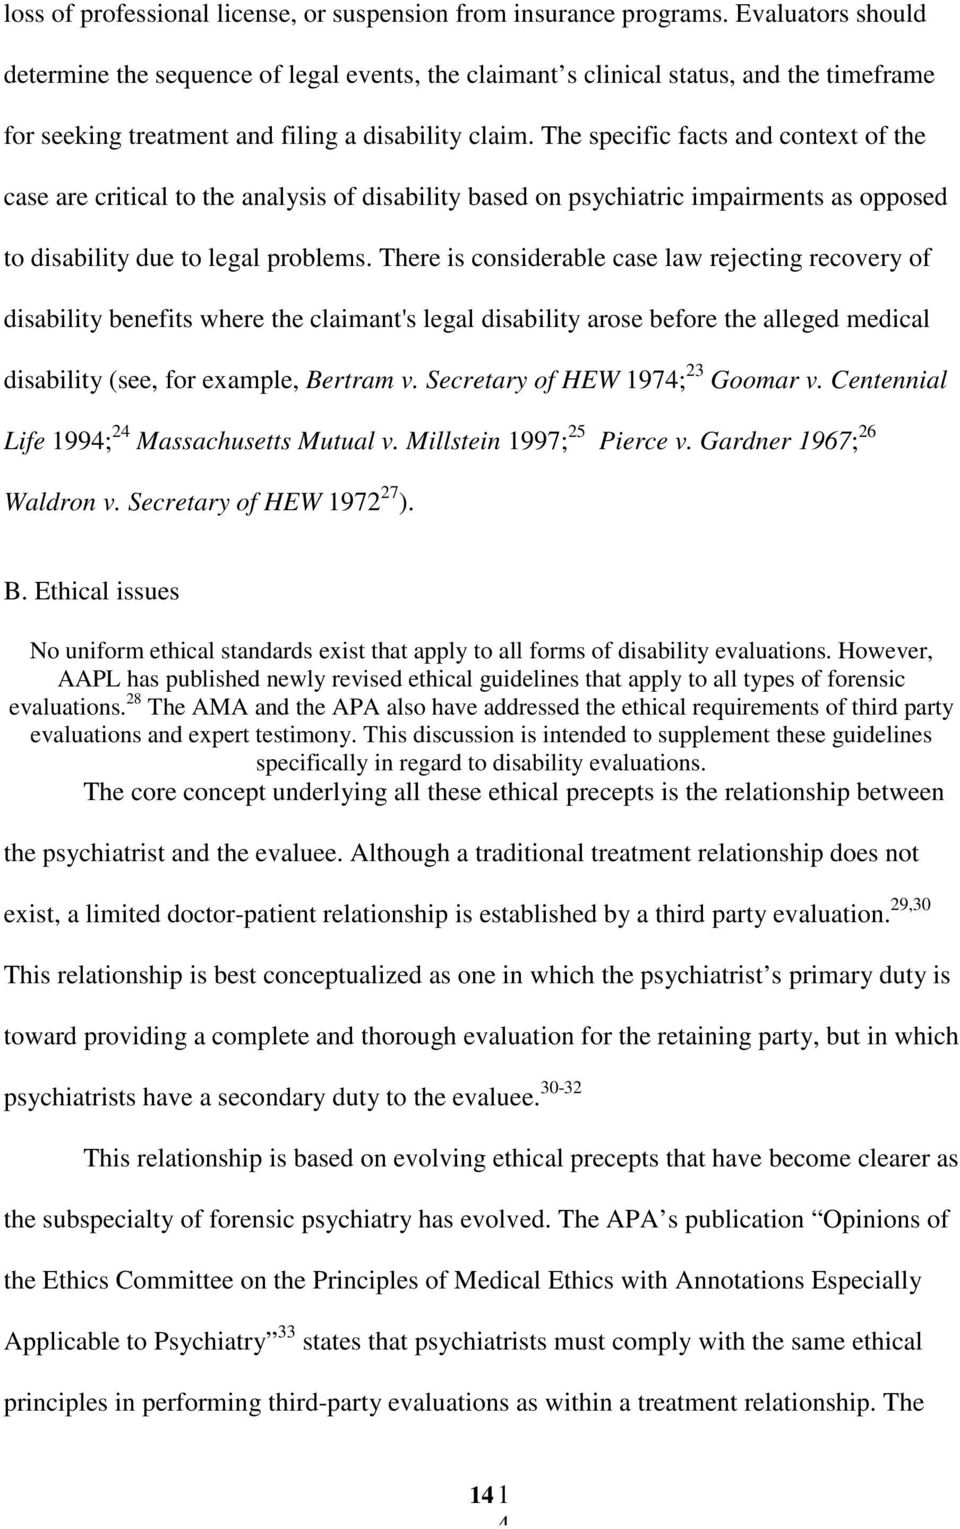 The specific facts and context of the case are critical to the analysis of disability based on psychiatric impairments as opposed to disability due to legal problems.